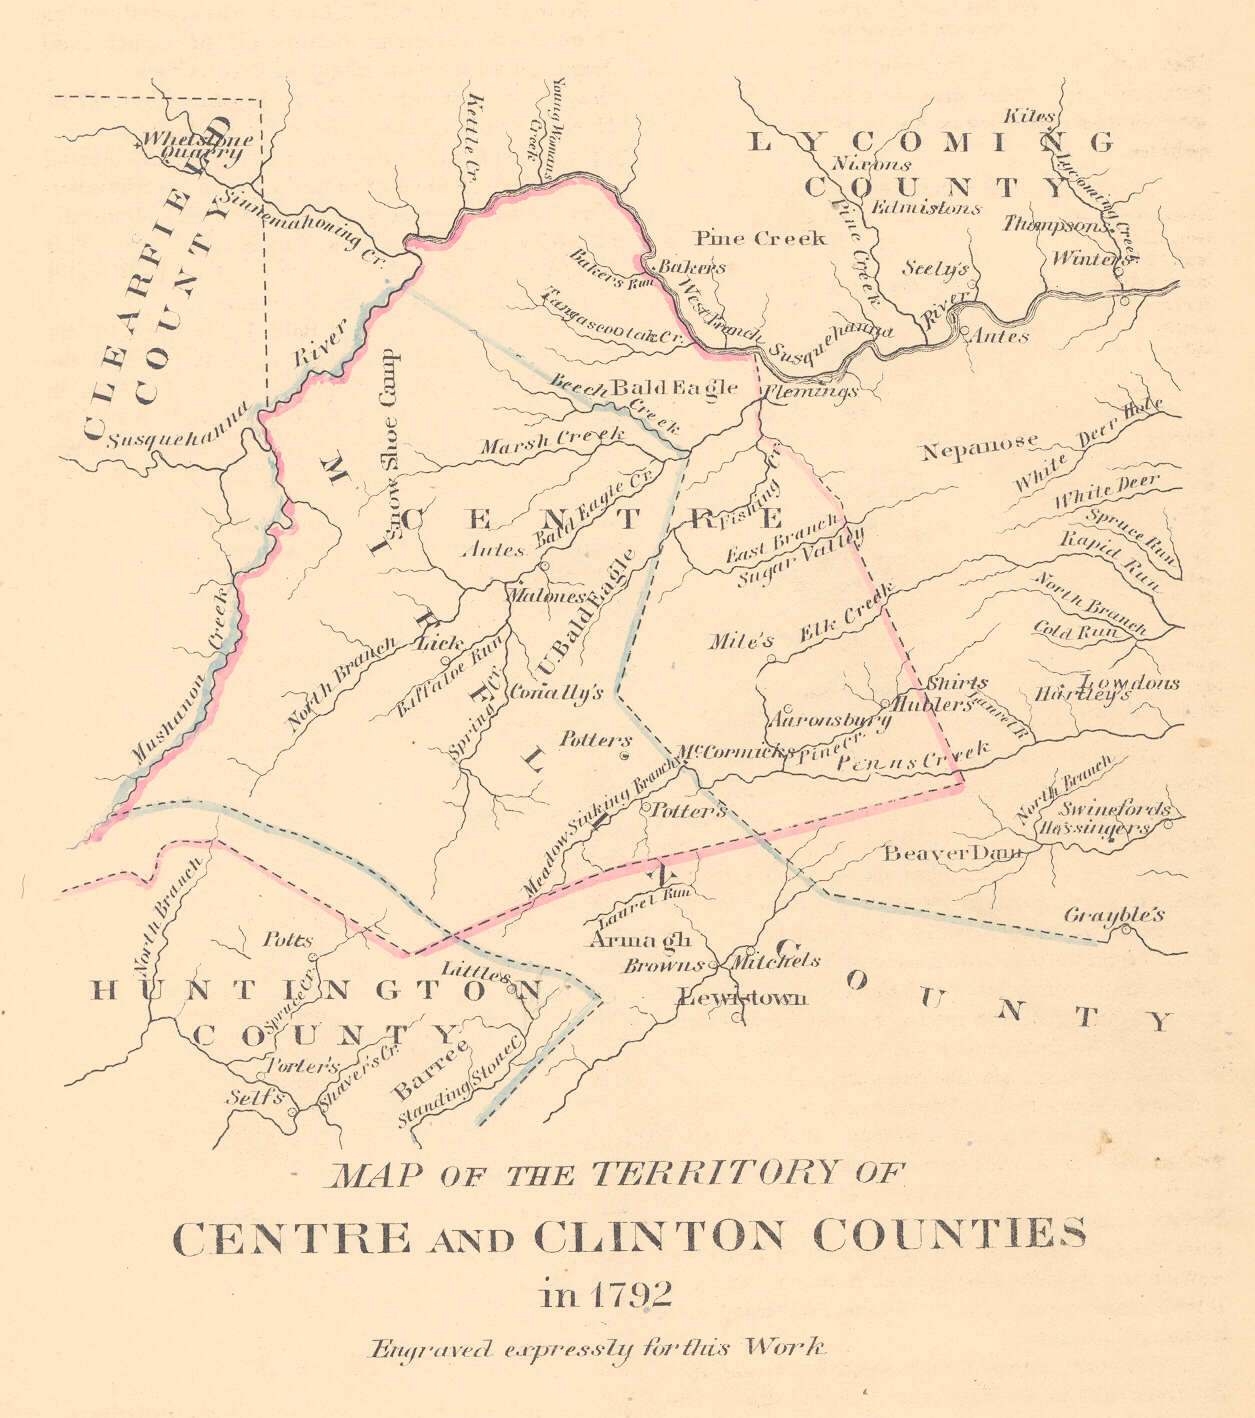 Centre & Clinton Counties, 1792